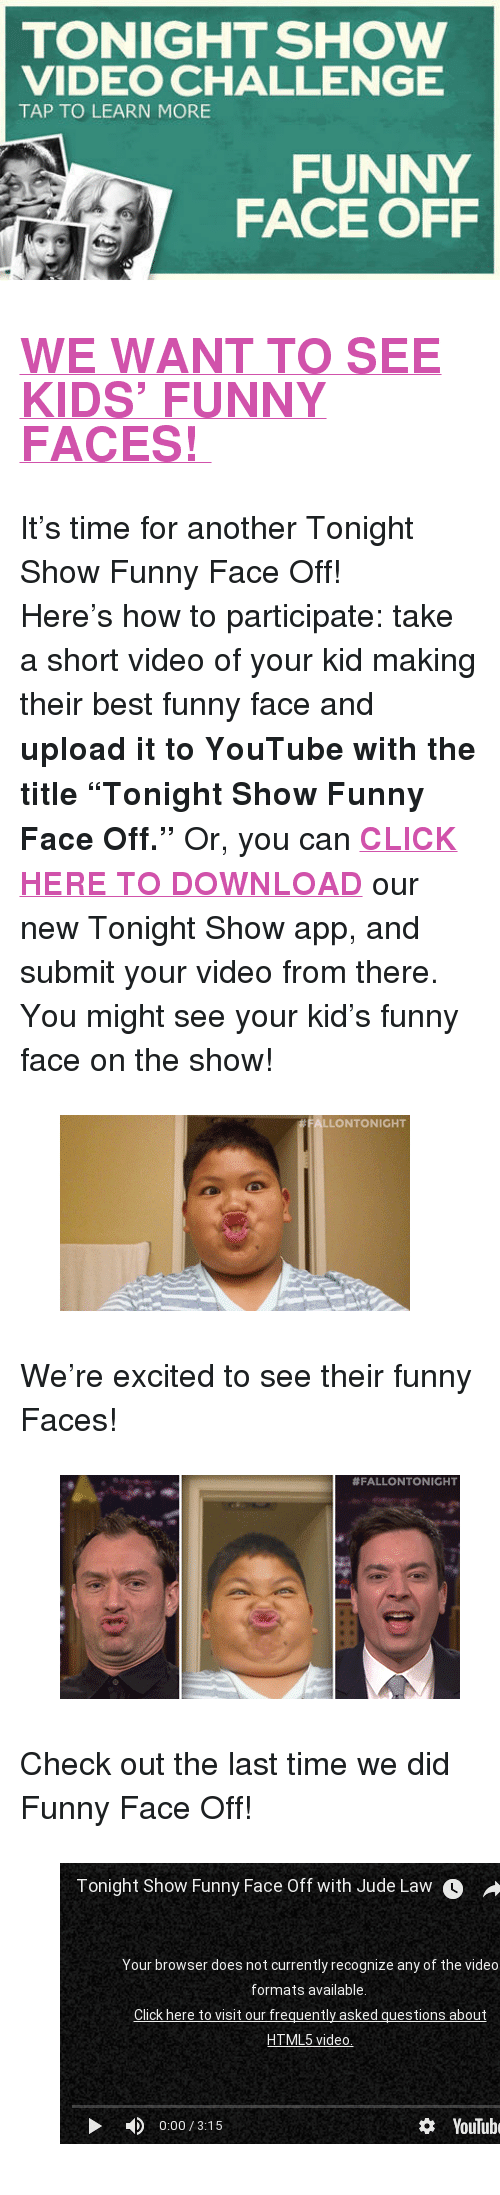 """funny face: TONIGHT SHOW  VIDEO CHALLENGE  TAP TO LEARN MORE  FUNNY  FACE OFF <h2><b><a href=""""http://www.nbc.com/the-tonight-show/blogs/3121"""" target=""""_blank"""">WE WANT TO SEE KIDS' FUNNY FACES!</a></b></h2><p>It's time for another Tonight Show Funny Face Off!</p><p>Here's how to participate: take a short video of your kid making their best funny face and <b>upload it to YouTube with the title """"Tonight Show Funny Face Off.""""</b> Or, you can <b><a href=""""http://www.nbc.com/the-tonight-show/blogs/1086"""" target=""""_blank"""">CLICK HERE TO DOWNLOAD</a></b> our new Tonight Show app, and submit your video from there. You might see your kid's funny face on the show!</p><figure data-orig-width=""""350"""" data-orig-height=""""196""""><img src=""""https://78.media.tumblr.com/fea73ad57acb250b718b5f3d15da086d/tumblr_inline_nlitsstbOT1qgt12i.gif"""" alt=""""image"""" data-orig-width=""""350"""" data-orig-height=""""196""""/></figure><p>We're excited to see their funny Faces!</p><figure data-orig-width=""""400"""" data-orig-height=""""224""""><img src=""""https://78.media.tumblr.com/daadc7d7137e90d2bdc7b3f60b7f0230/tumblr_inline_nlitt0yZiD1qgt12i.gif"""" alt=""""image"""" data-orig-width=""""400"""" data-orig-height=""""224""""/></figure><p>Check out the last time we did Funny Face Off!</p><figure class=""""tmblr-embed"""" data-provider=""""youtube"""" data-orig-width=""""540"""" data-orig-height=""""304"""" data-url=""""https%3A%2F%2Fwww.youtube.com%2Fwatch%3Fv%3DFlqMnDUtfOQ""""><iframe width=""""500"""" height=""""281"""" id=""""youtube_iframe"""" src=""""https://www.youtube.com/embed/FlqMnDUtfOQ?feature=oembed&amp;enablejsapi=1&amp;origin=https://safe.txmblr.com&amp;wmode=opaque"""" frameborder=""""0"""" allowfullscreen=""""""""></iframe></figure>"""